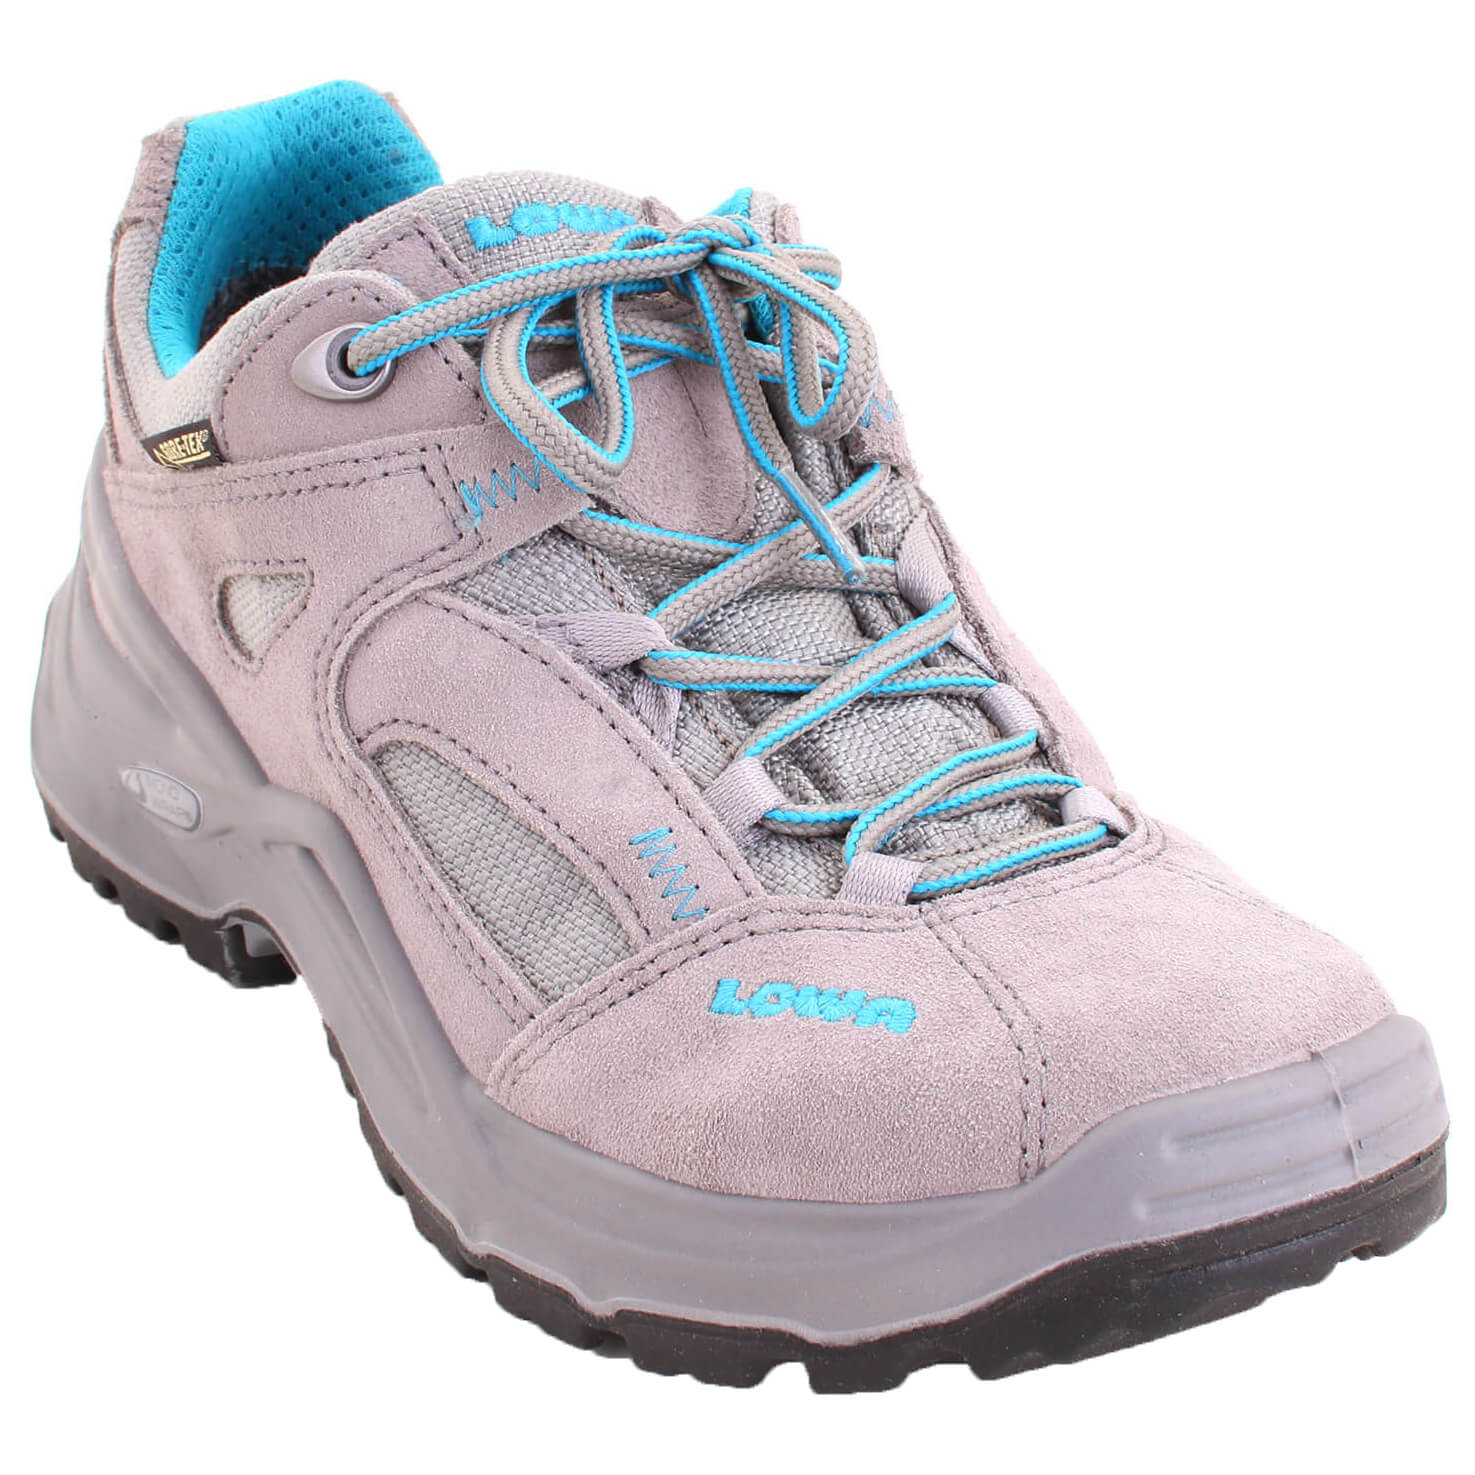 Lowa Women's Sirkos GTX Multisportschuhe Anthrazit Beere | 4 (UK)